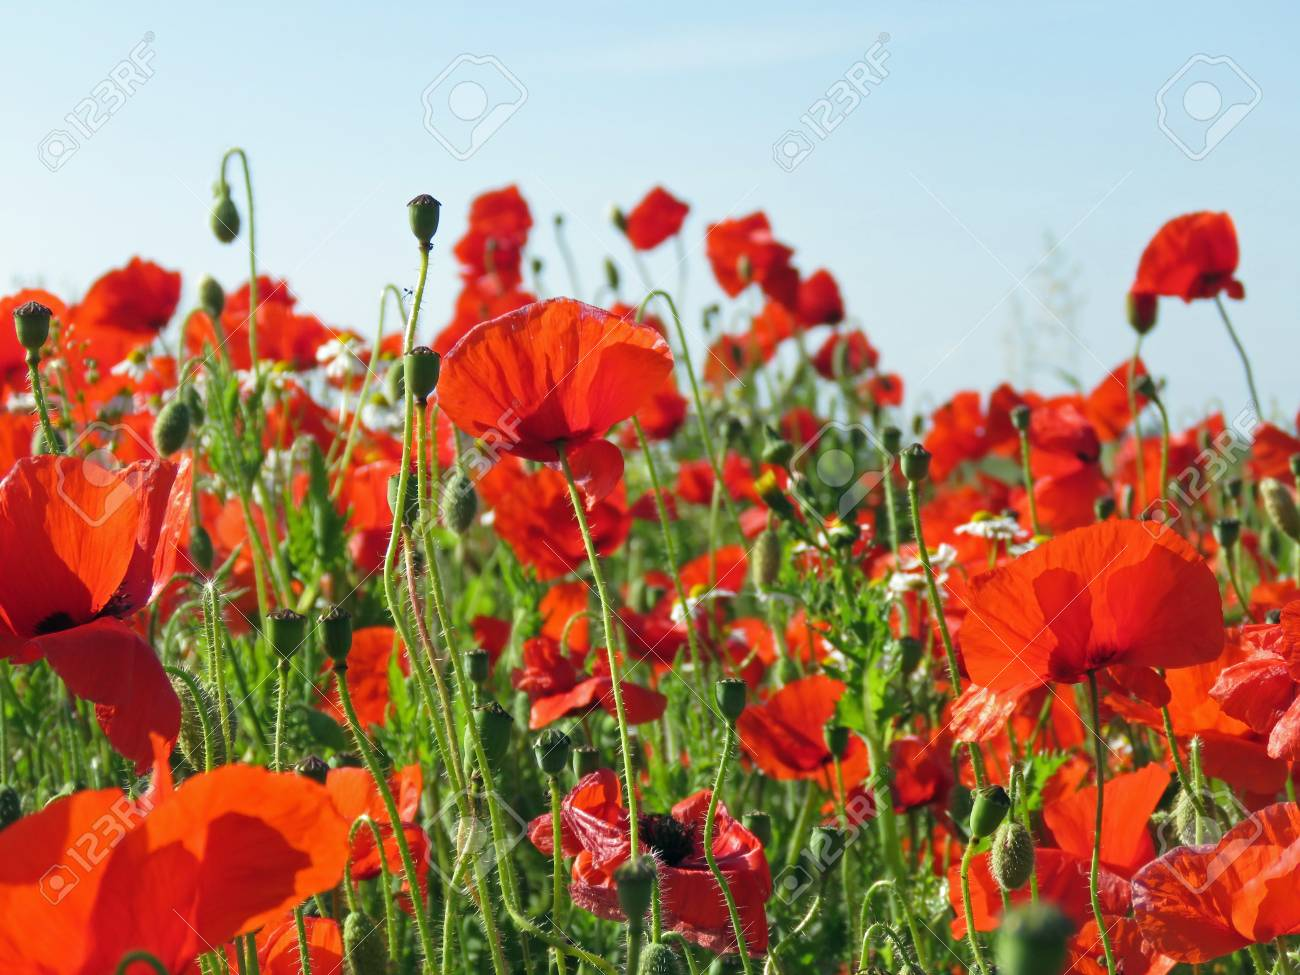 A meadow full of poppies and grasses in rural English countryside Standard-Bild - 81835533